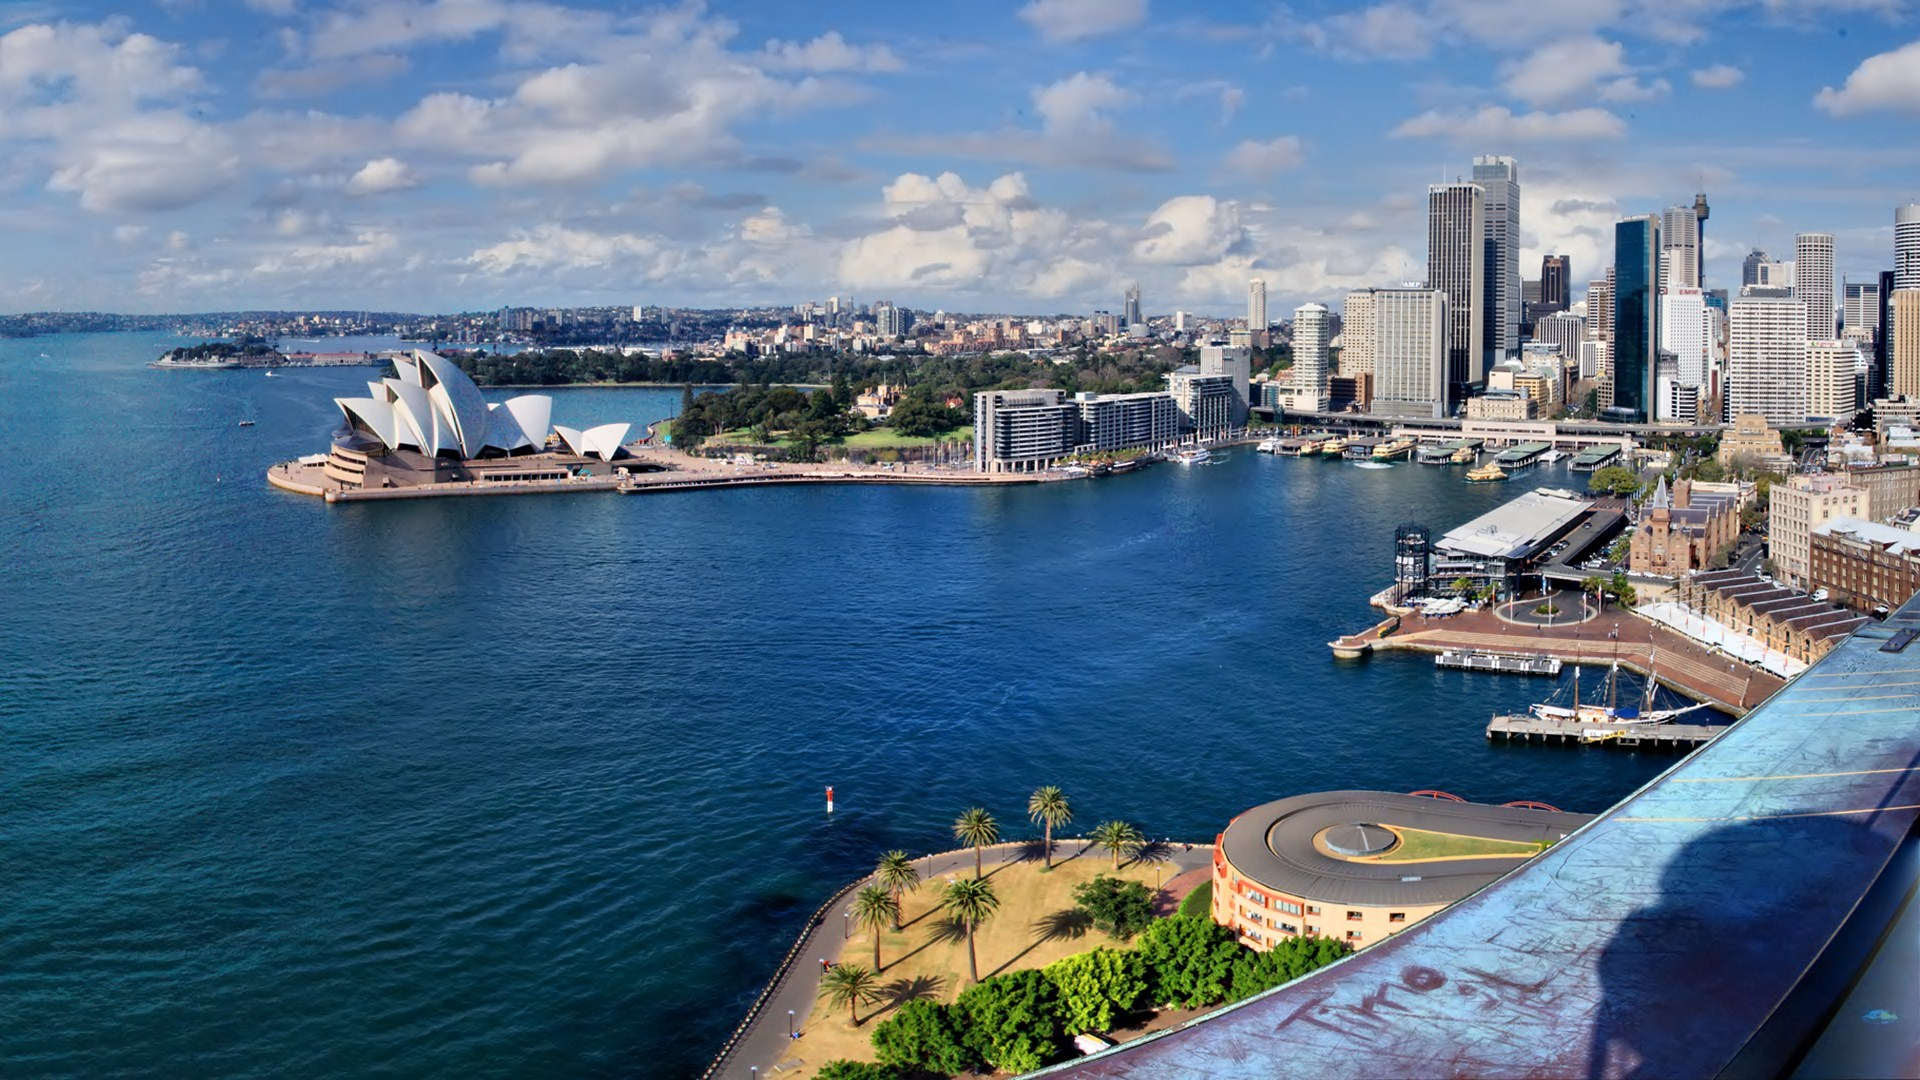 australia downtown full hd wallpaper and background image